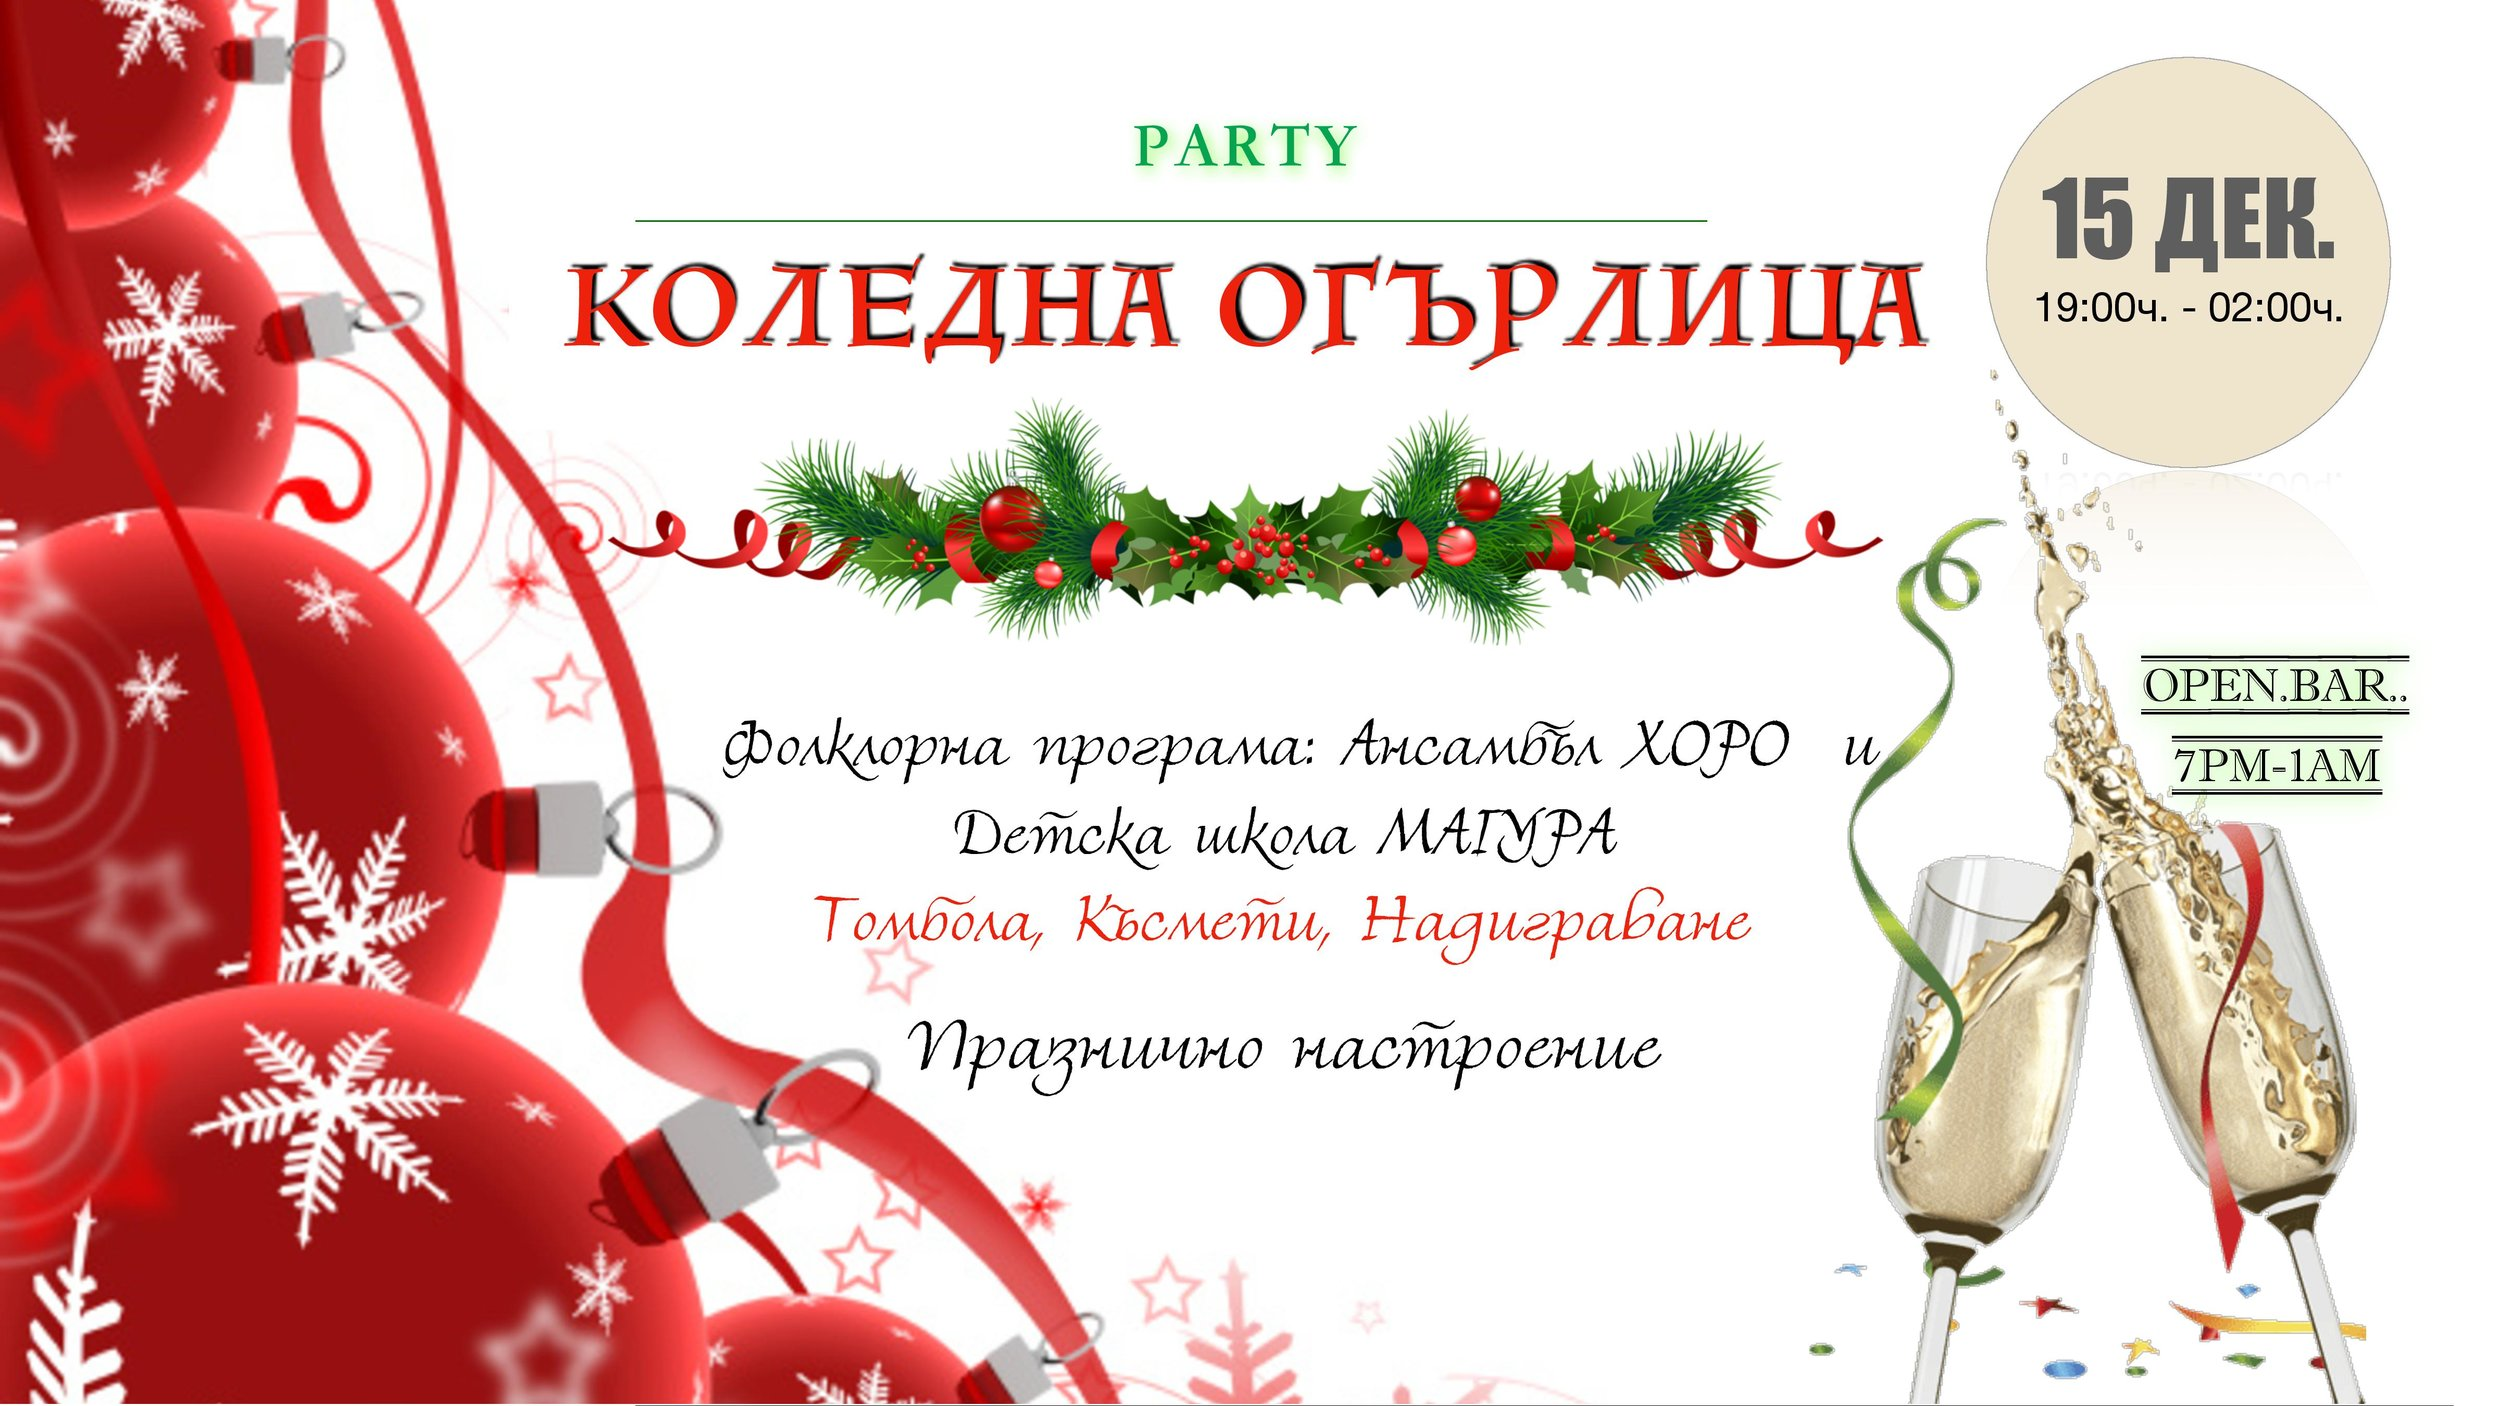 FB crystsl PARTY 2018 2-page-001.jpg